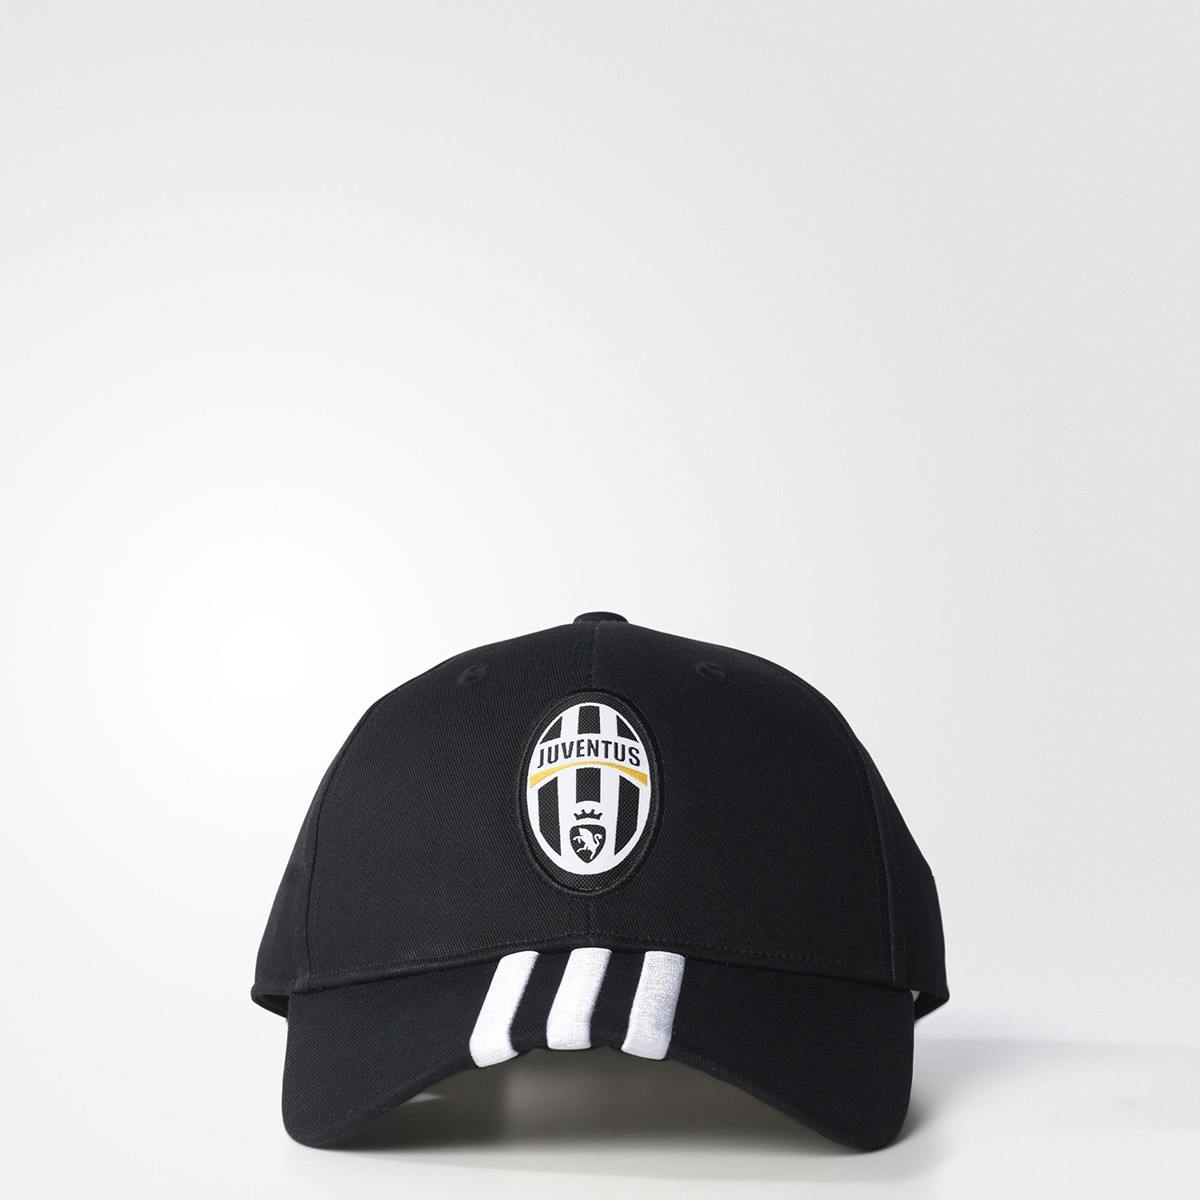 Bone Juventus 3-STRIPES 1